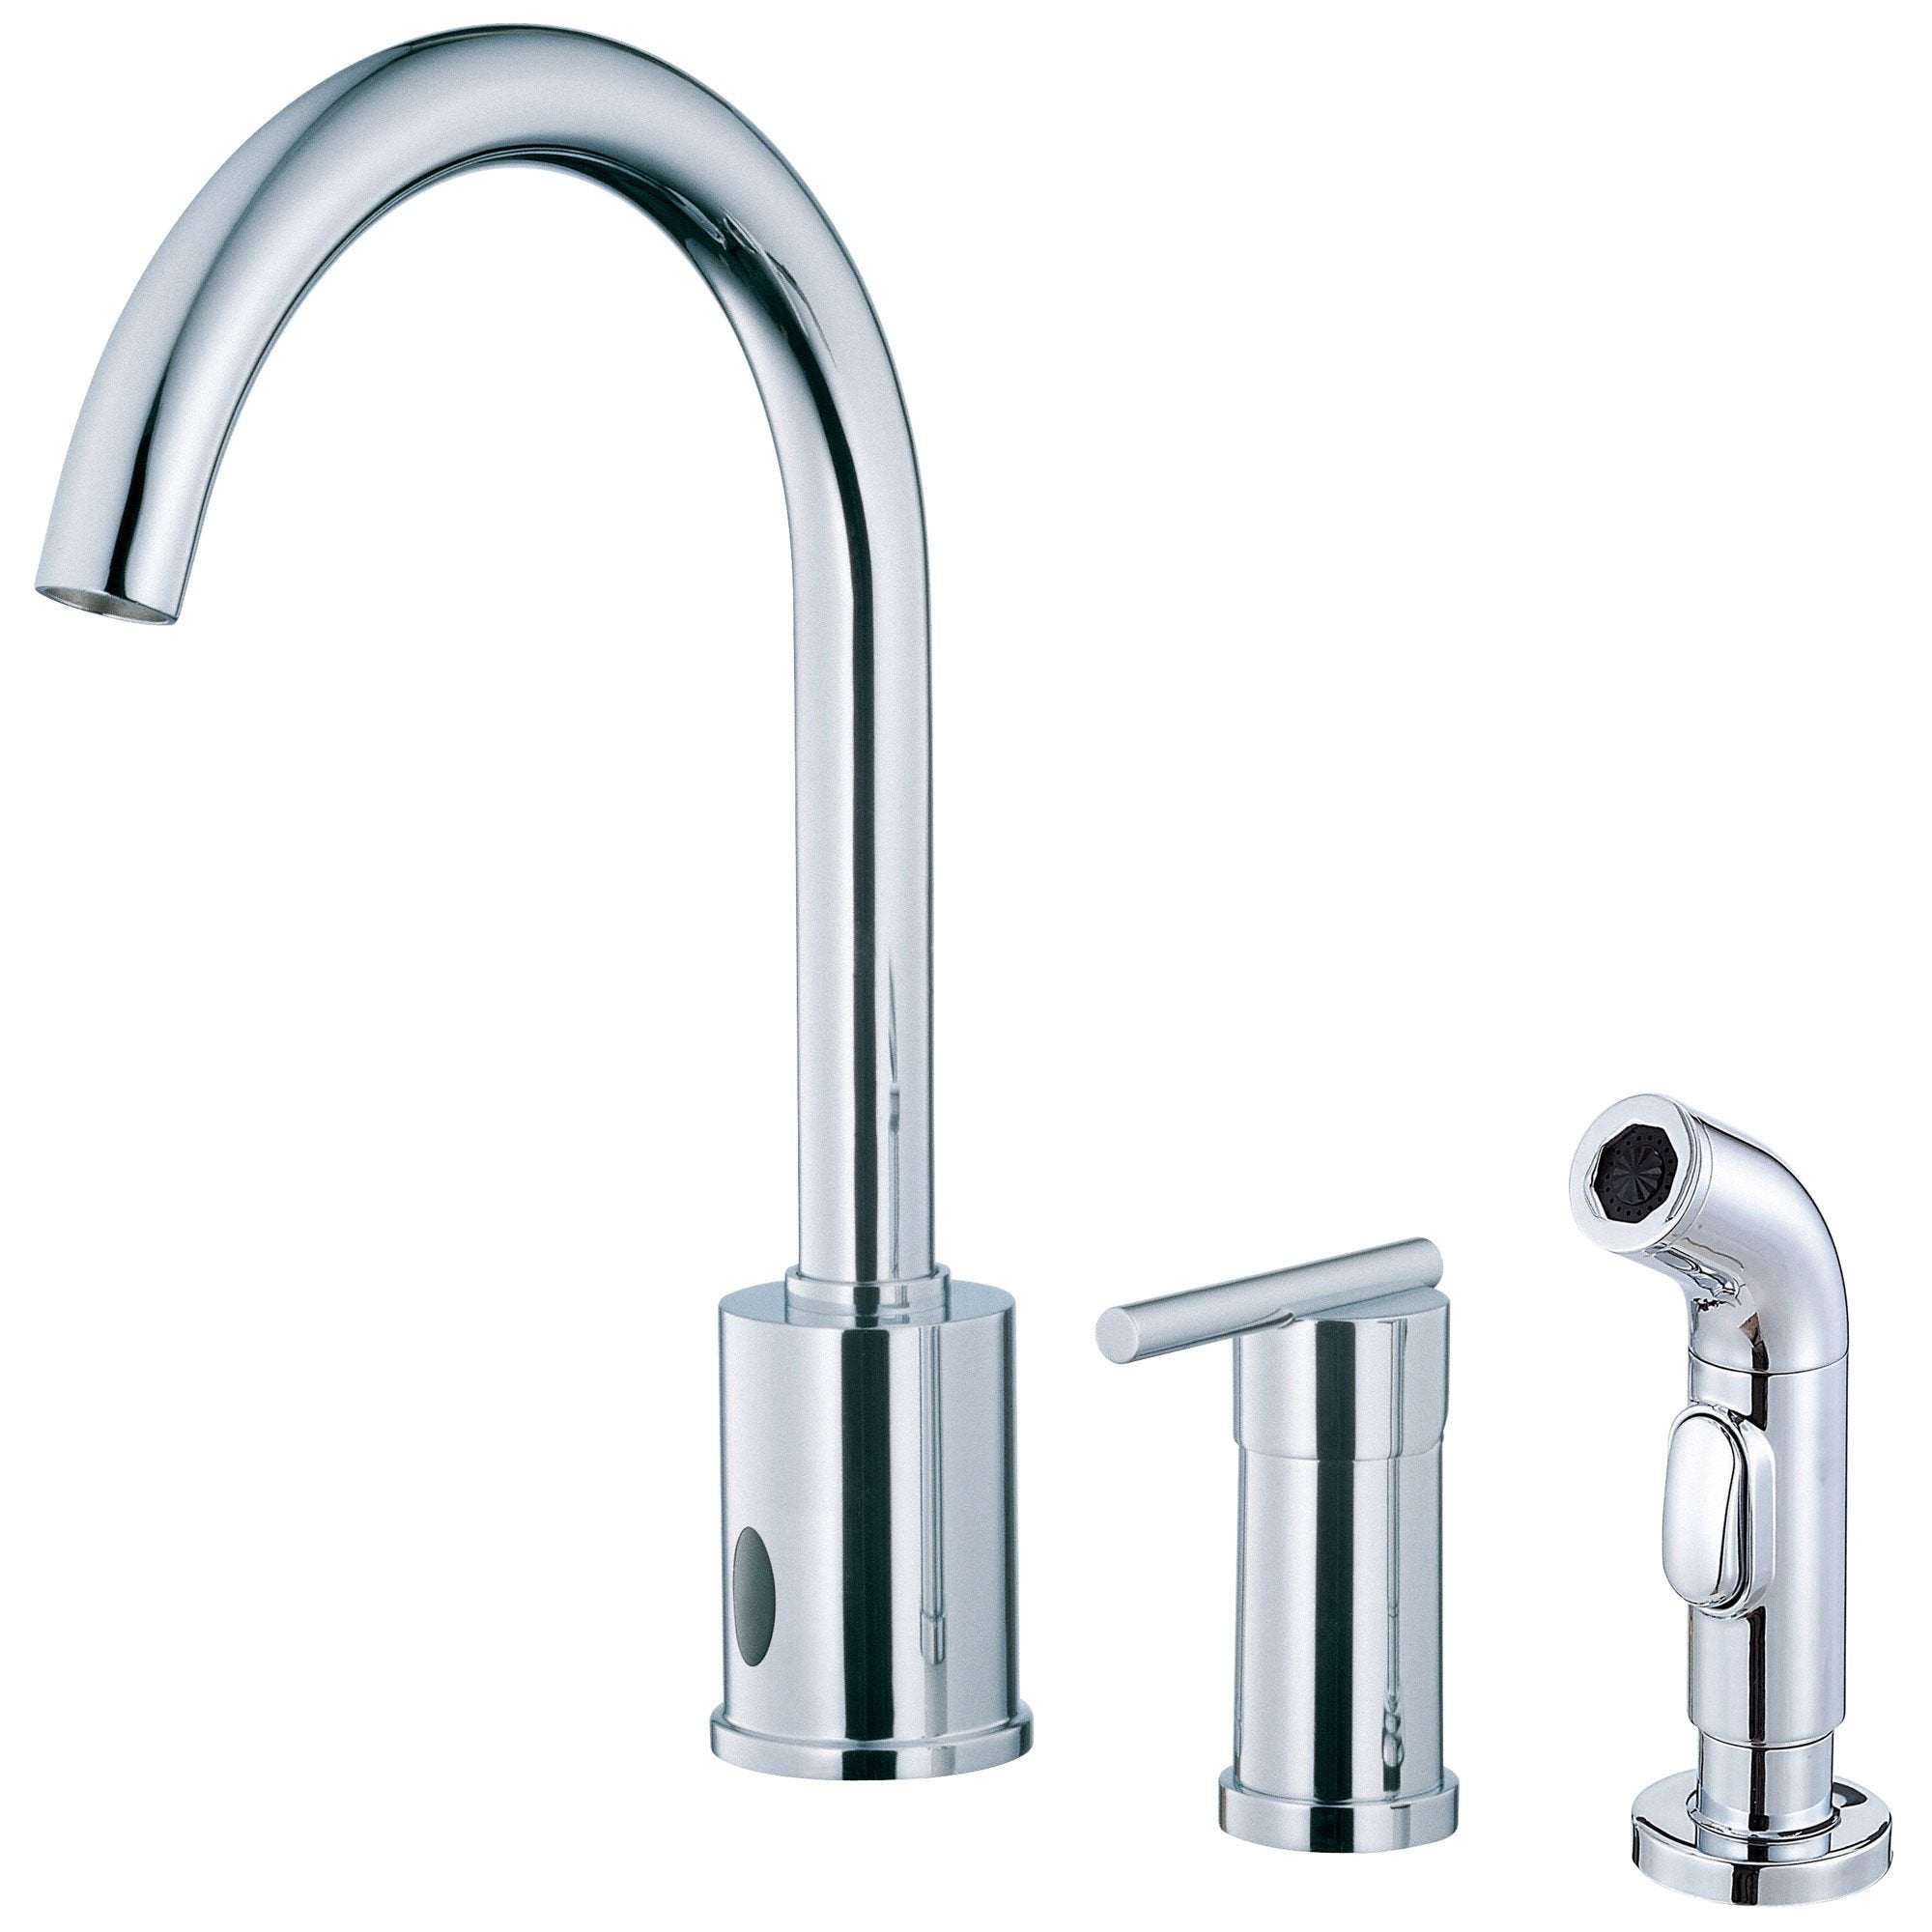 Danze Parma Chrome Electronic Eye Single Handle Kitchen Faucet with Sprayer